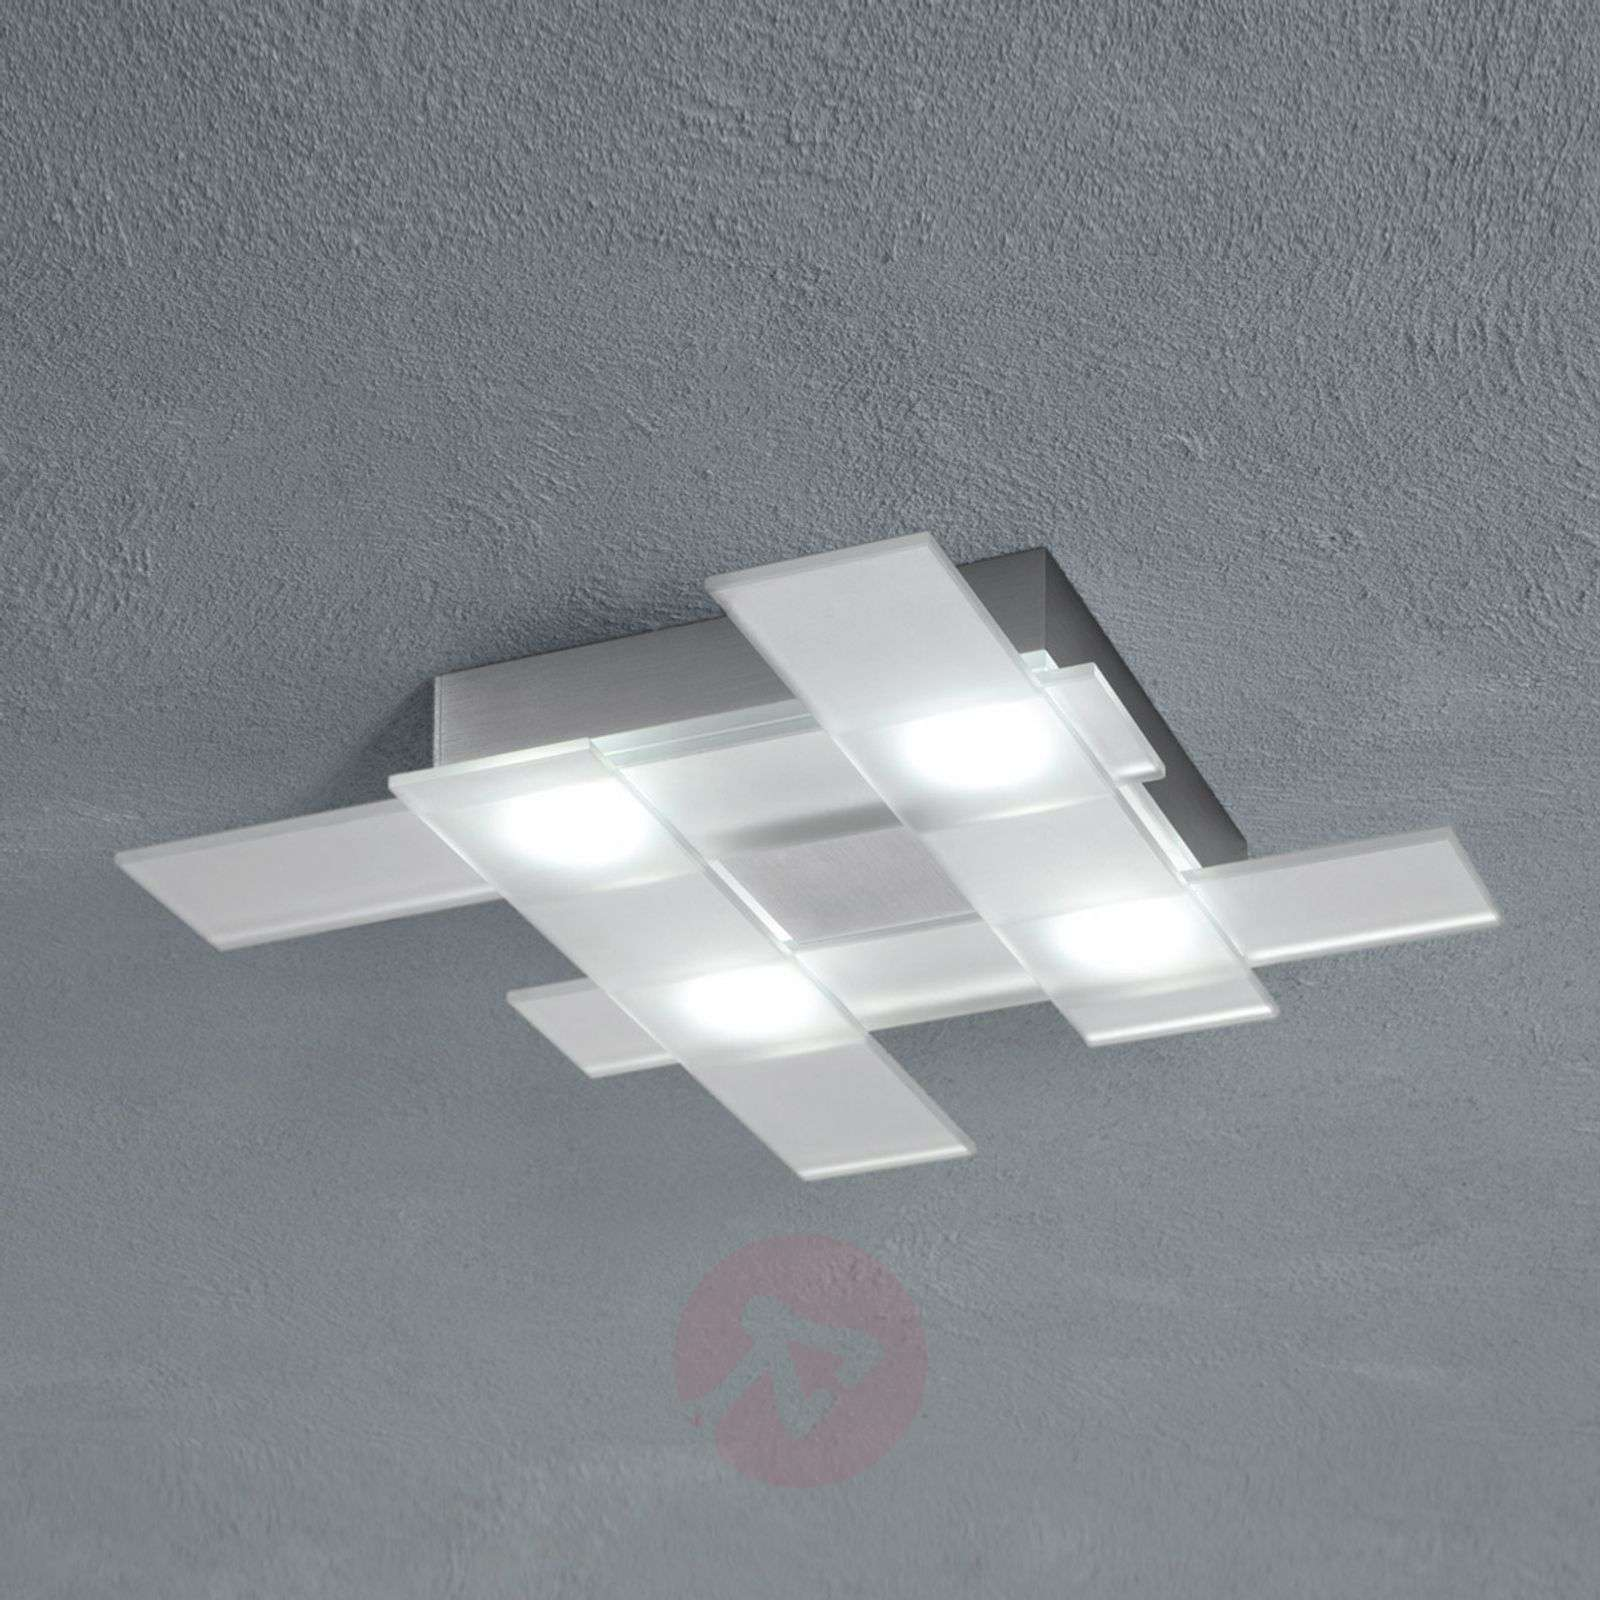 Led Ceiling Lights Company : Dimmable led ceiling light manhattan lights